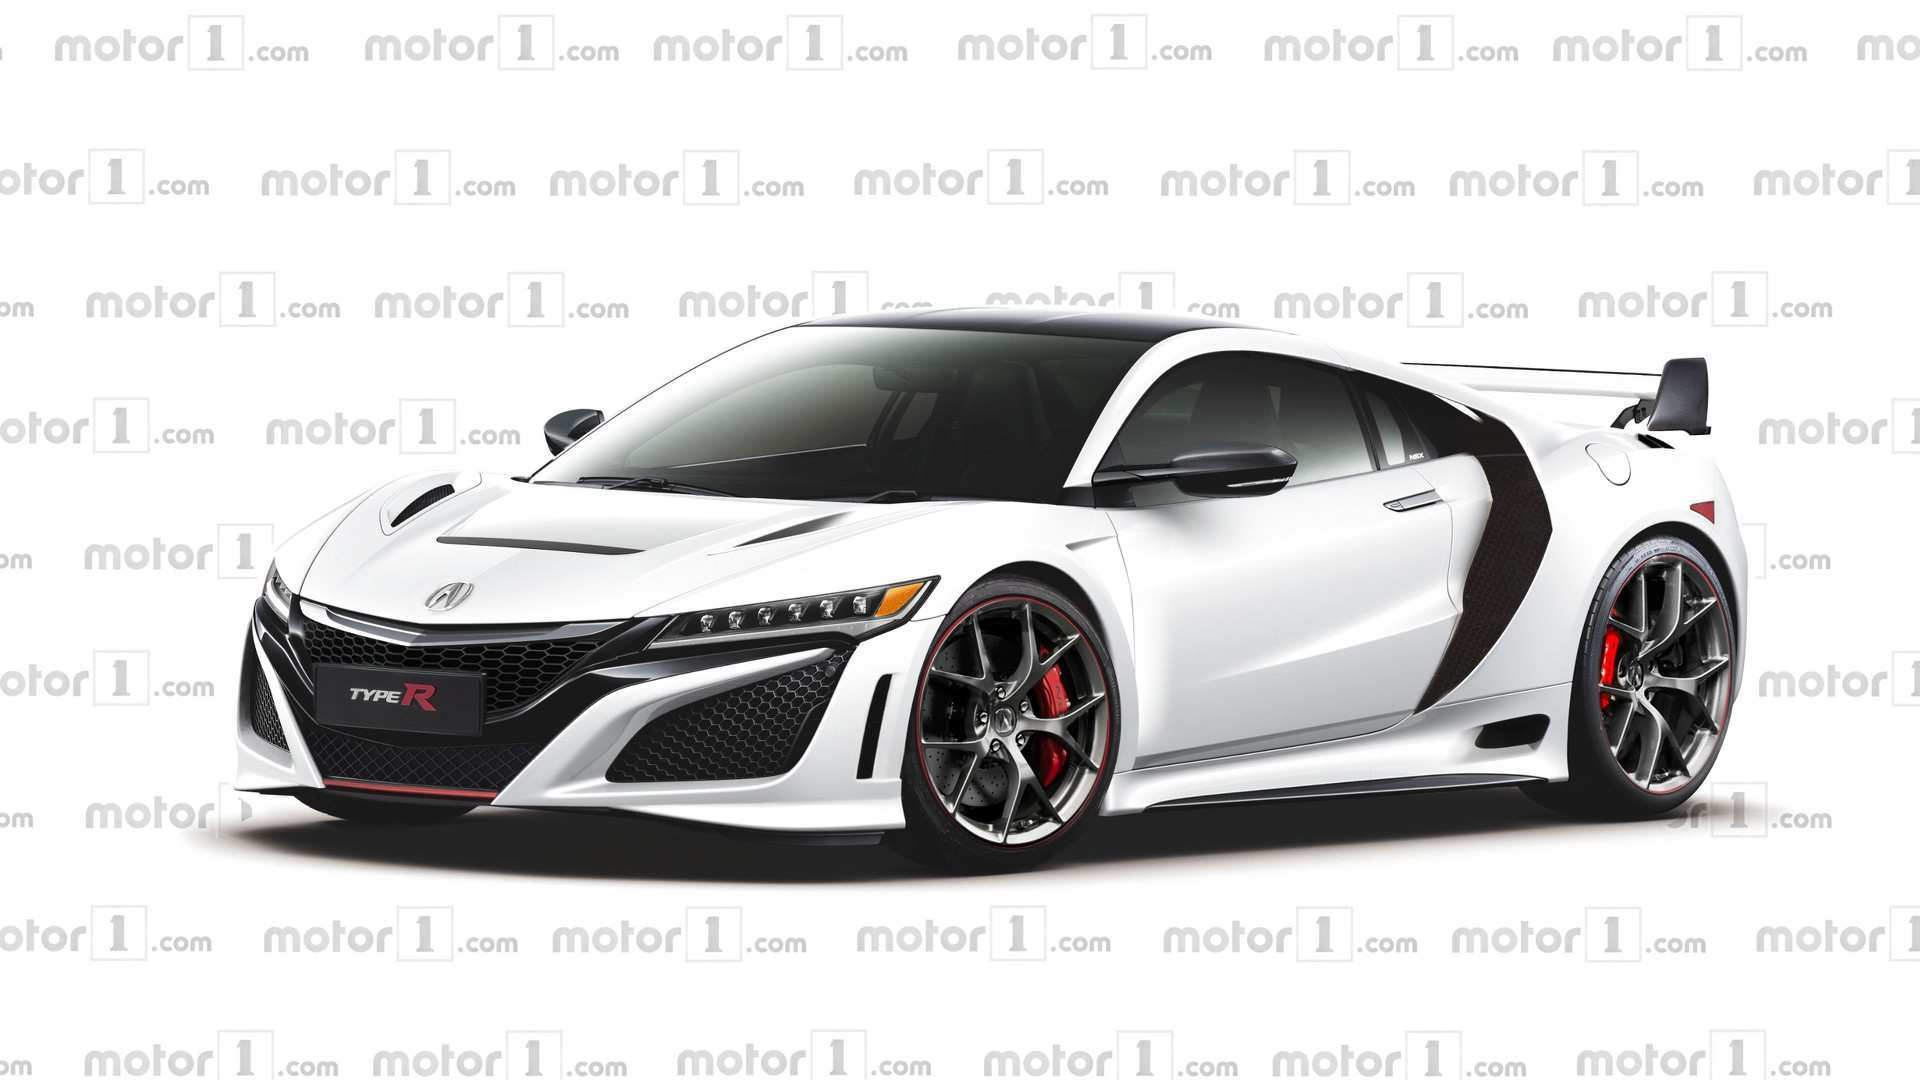 62 Great 2020 Acura Nsx Type R Engine with 2020 Acura Nsx Type R